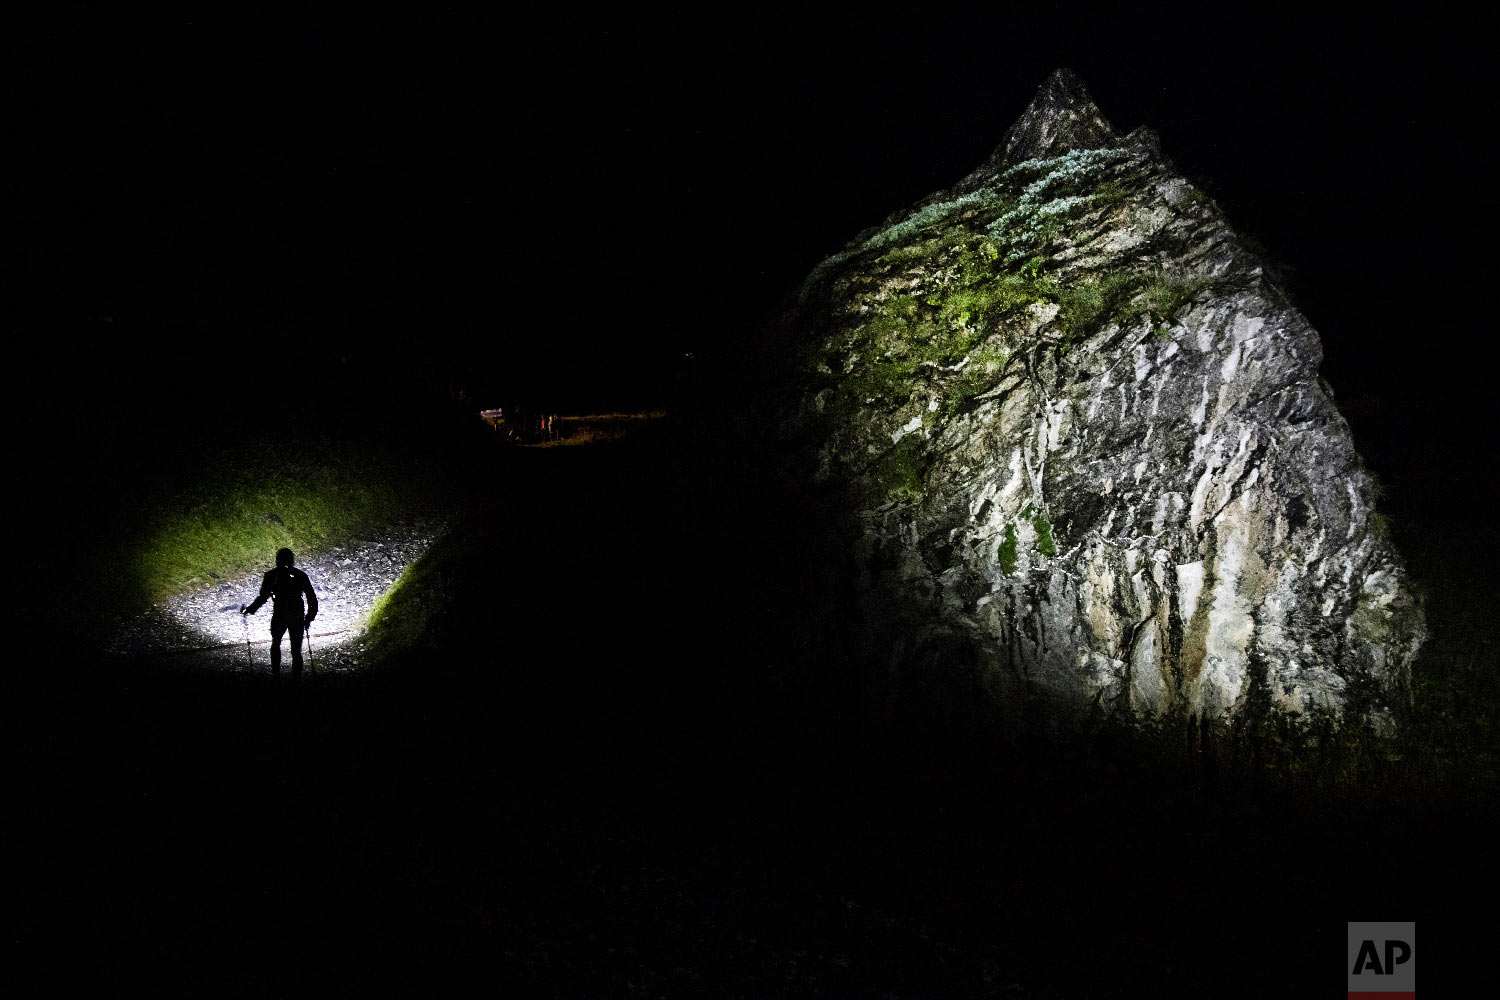 A competitor runs in the night on the Balmes path as he competes in the 170km Ultra-Trail of Mont-Blanc (UTMB) race, in Les Contamines Montjoie, French Alps, Aug. 31, 2018. (AP Photo/Laurent Cipriani)